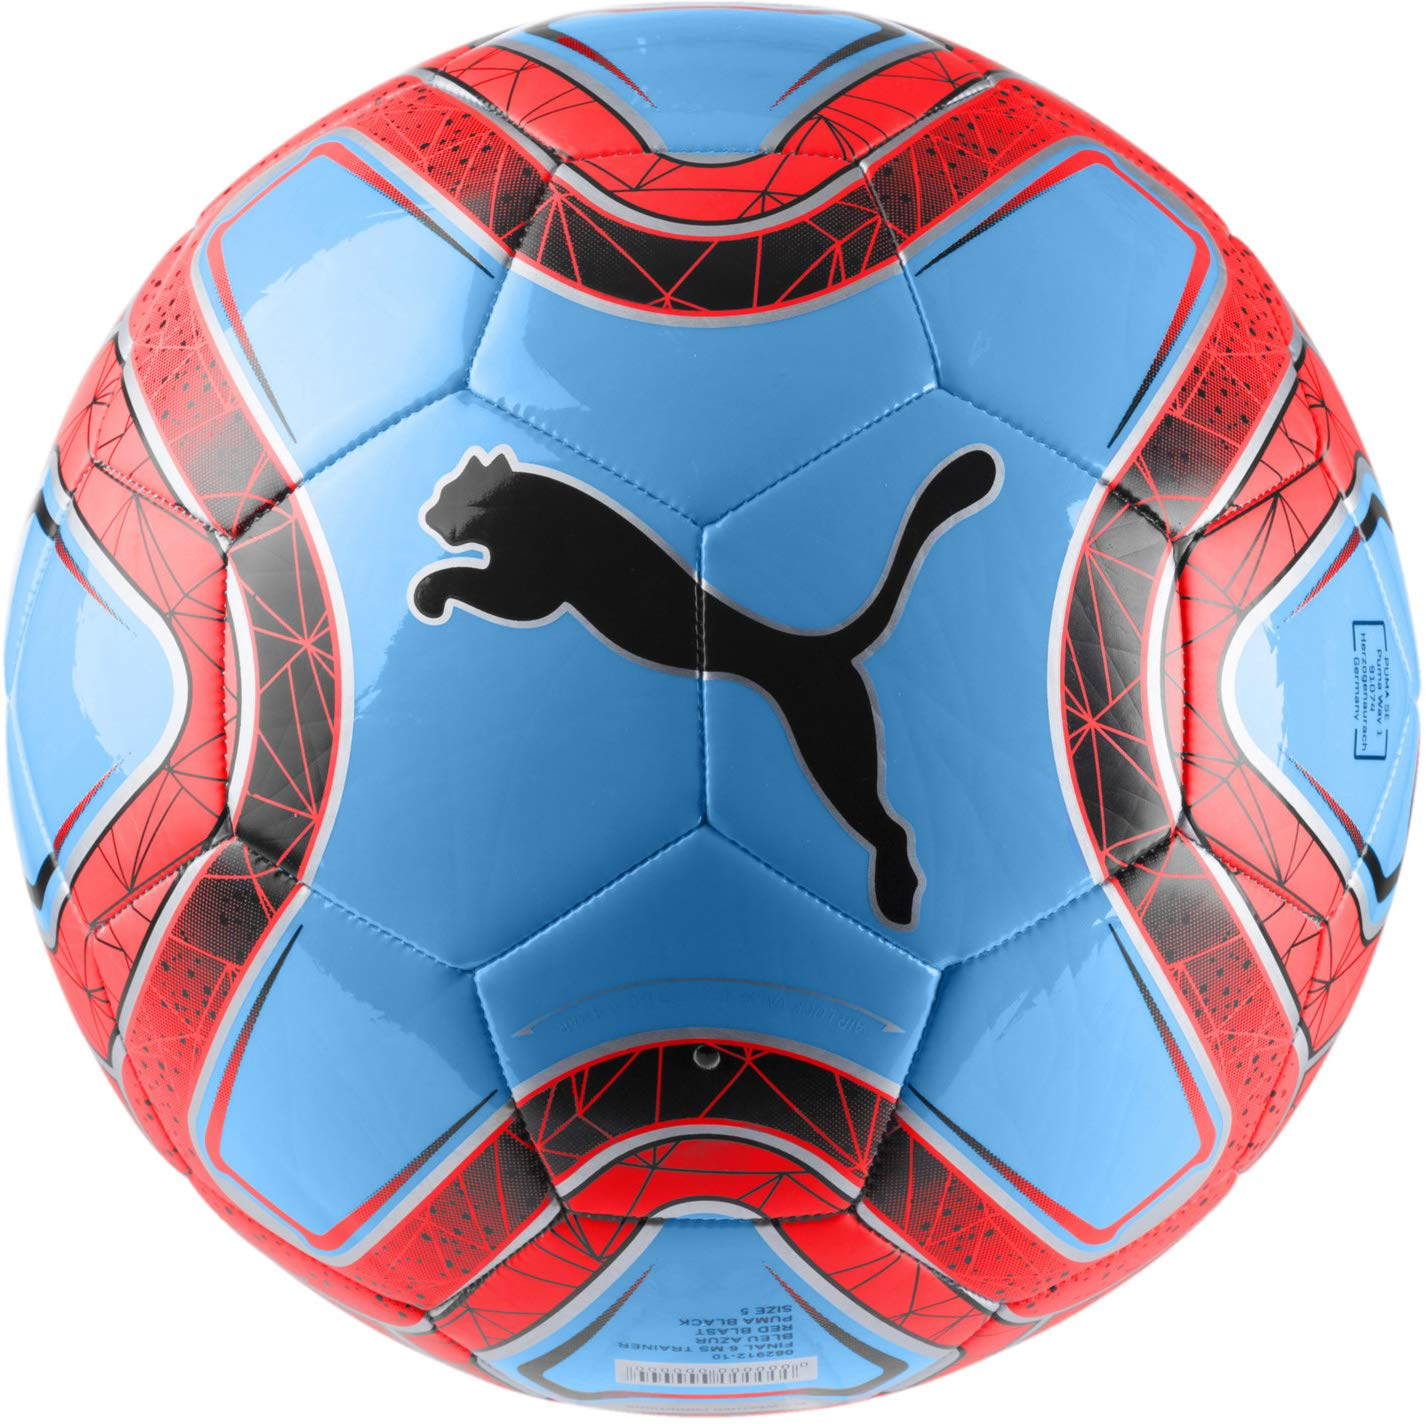 Puma Final 6 MS Trainer Soccer Ball